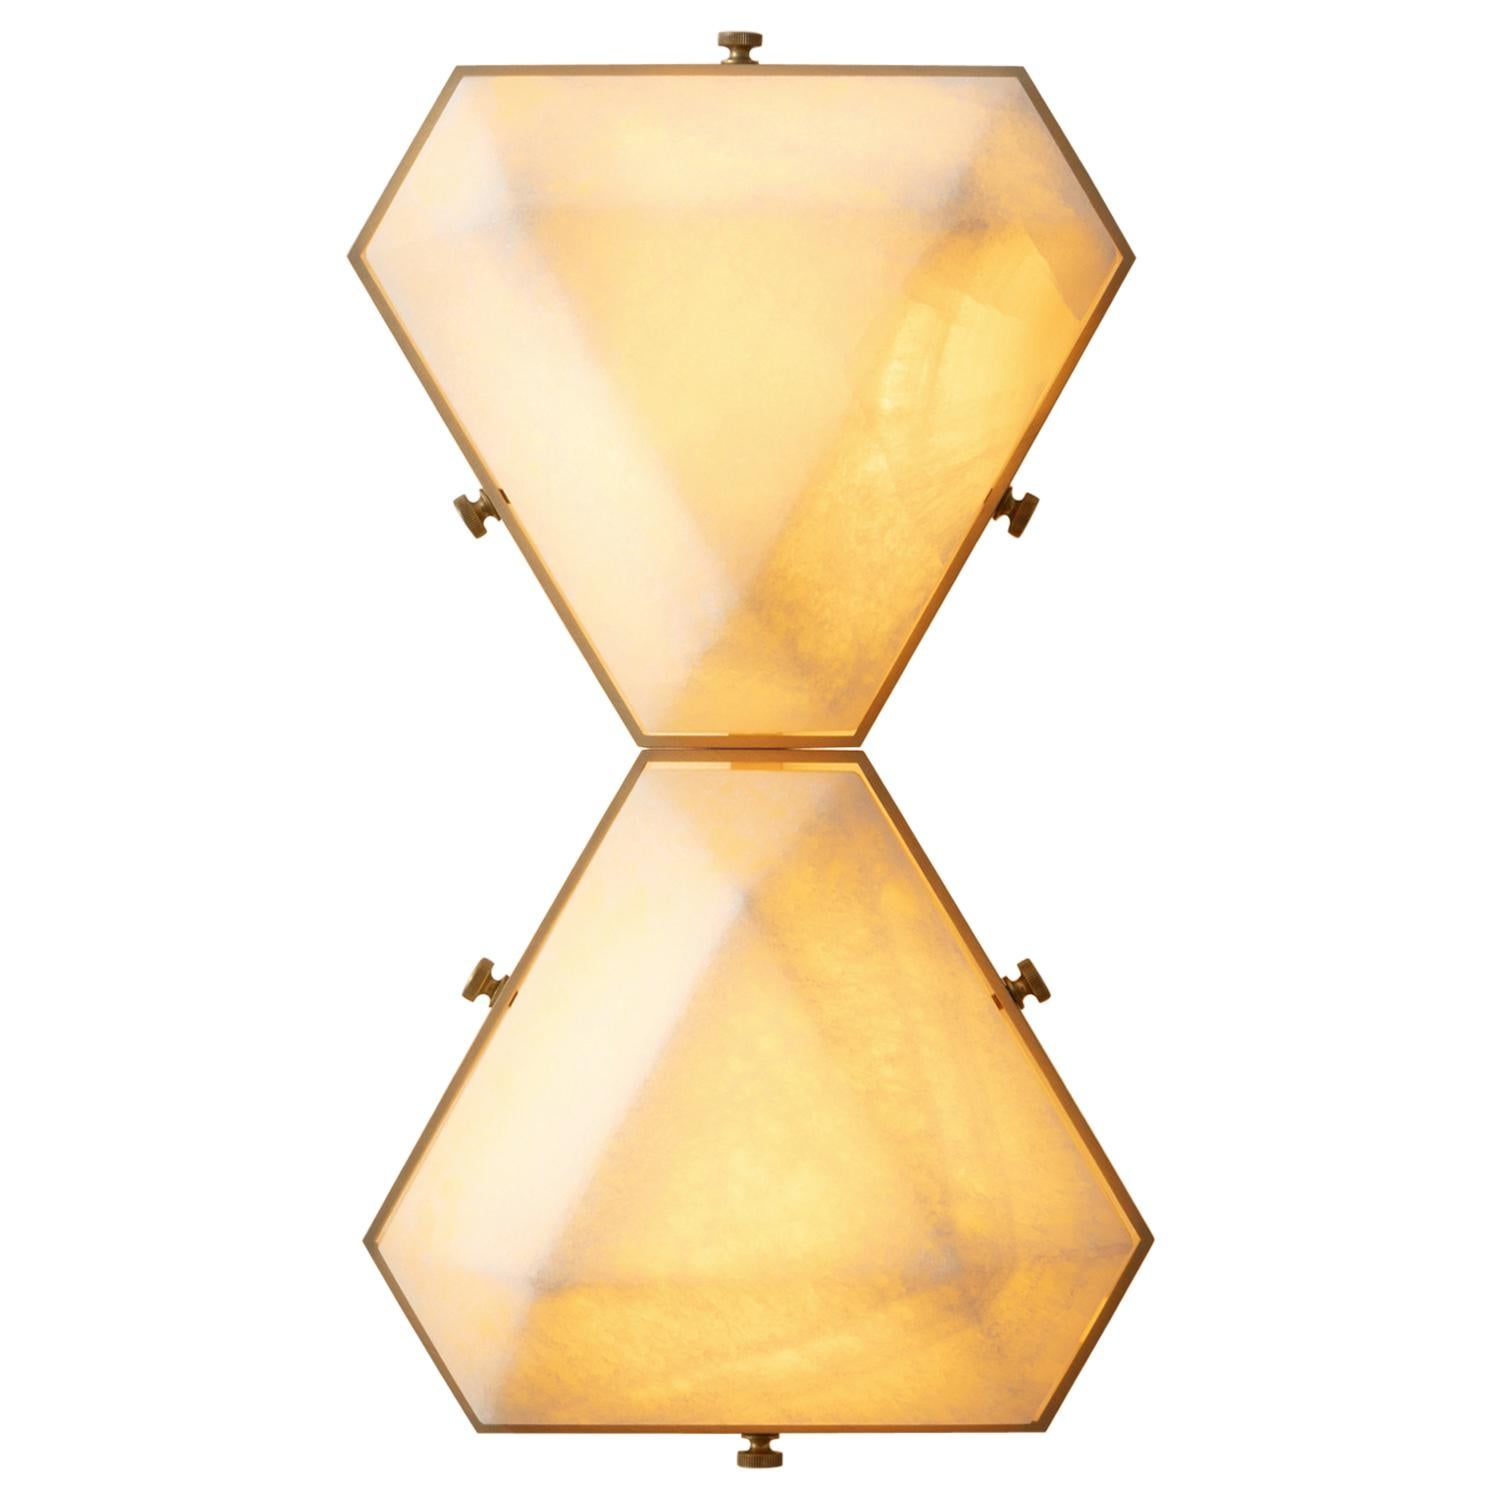 Vega Due Wall Sconce / Ceiling Mount in White Onyx by Matthew Fairbank